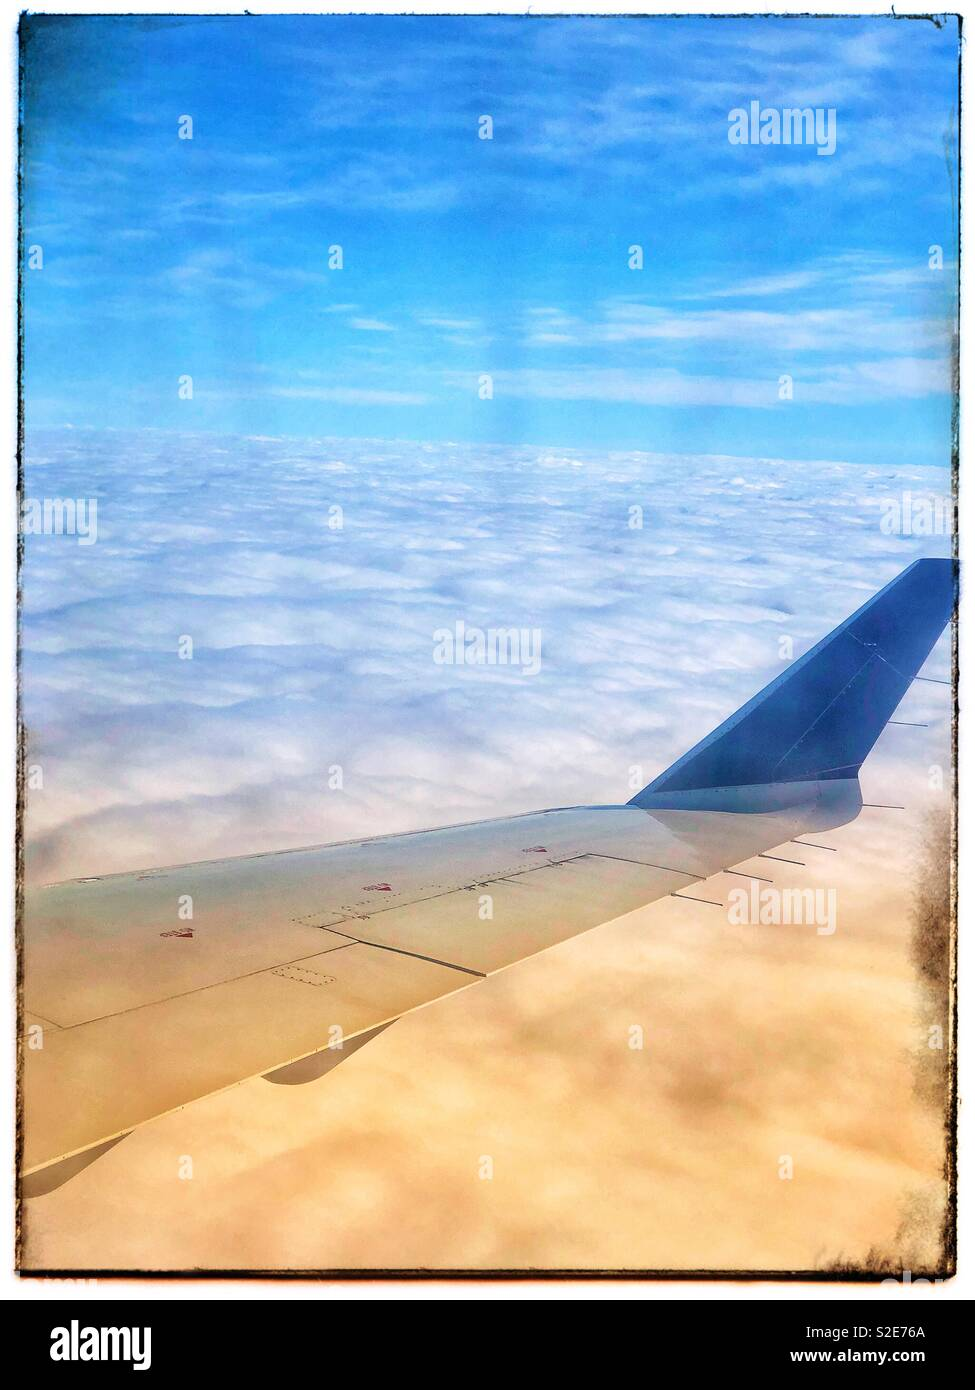 Airplane wing in the clouds - Stock Image